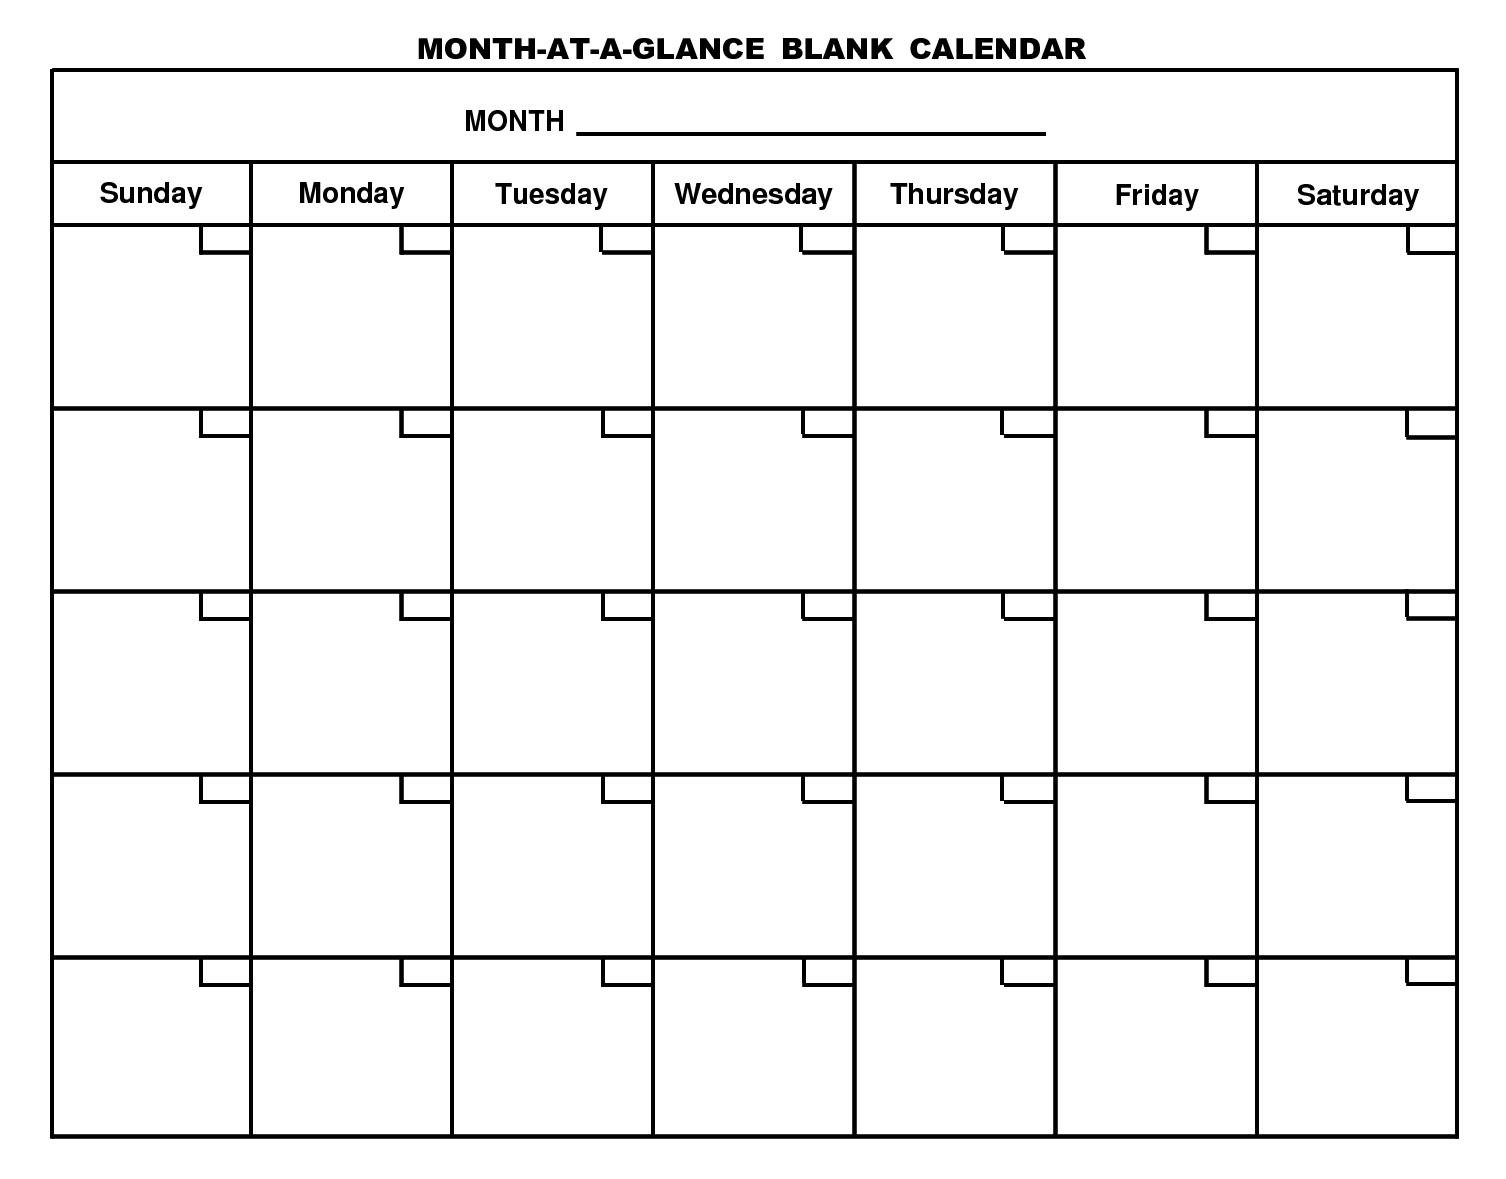 For Month At A Glance Blank Calendar Template - Free-Month At A Glance Blank Calendar Printable